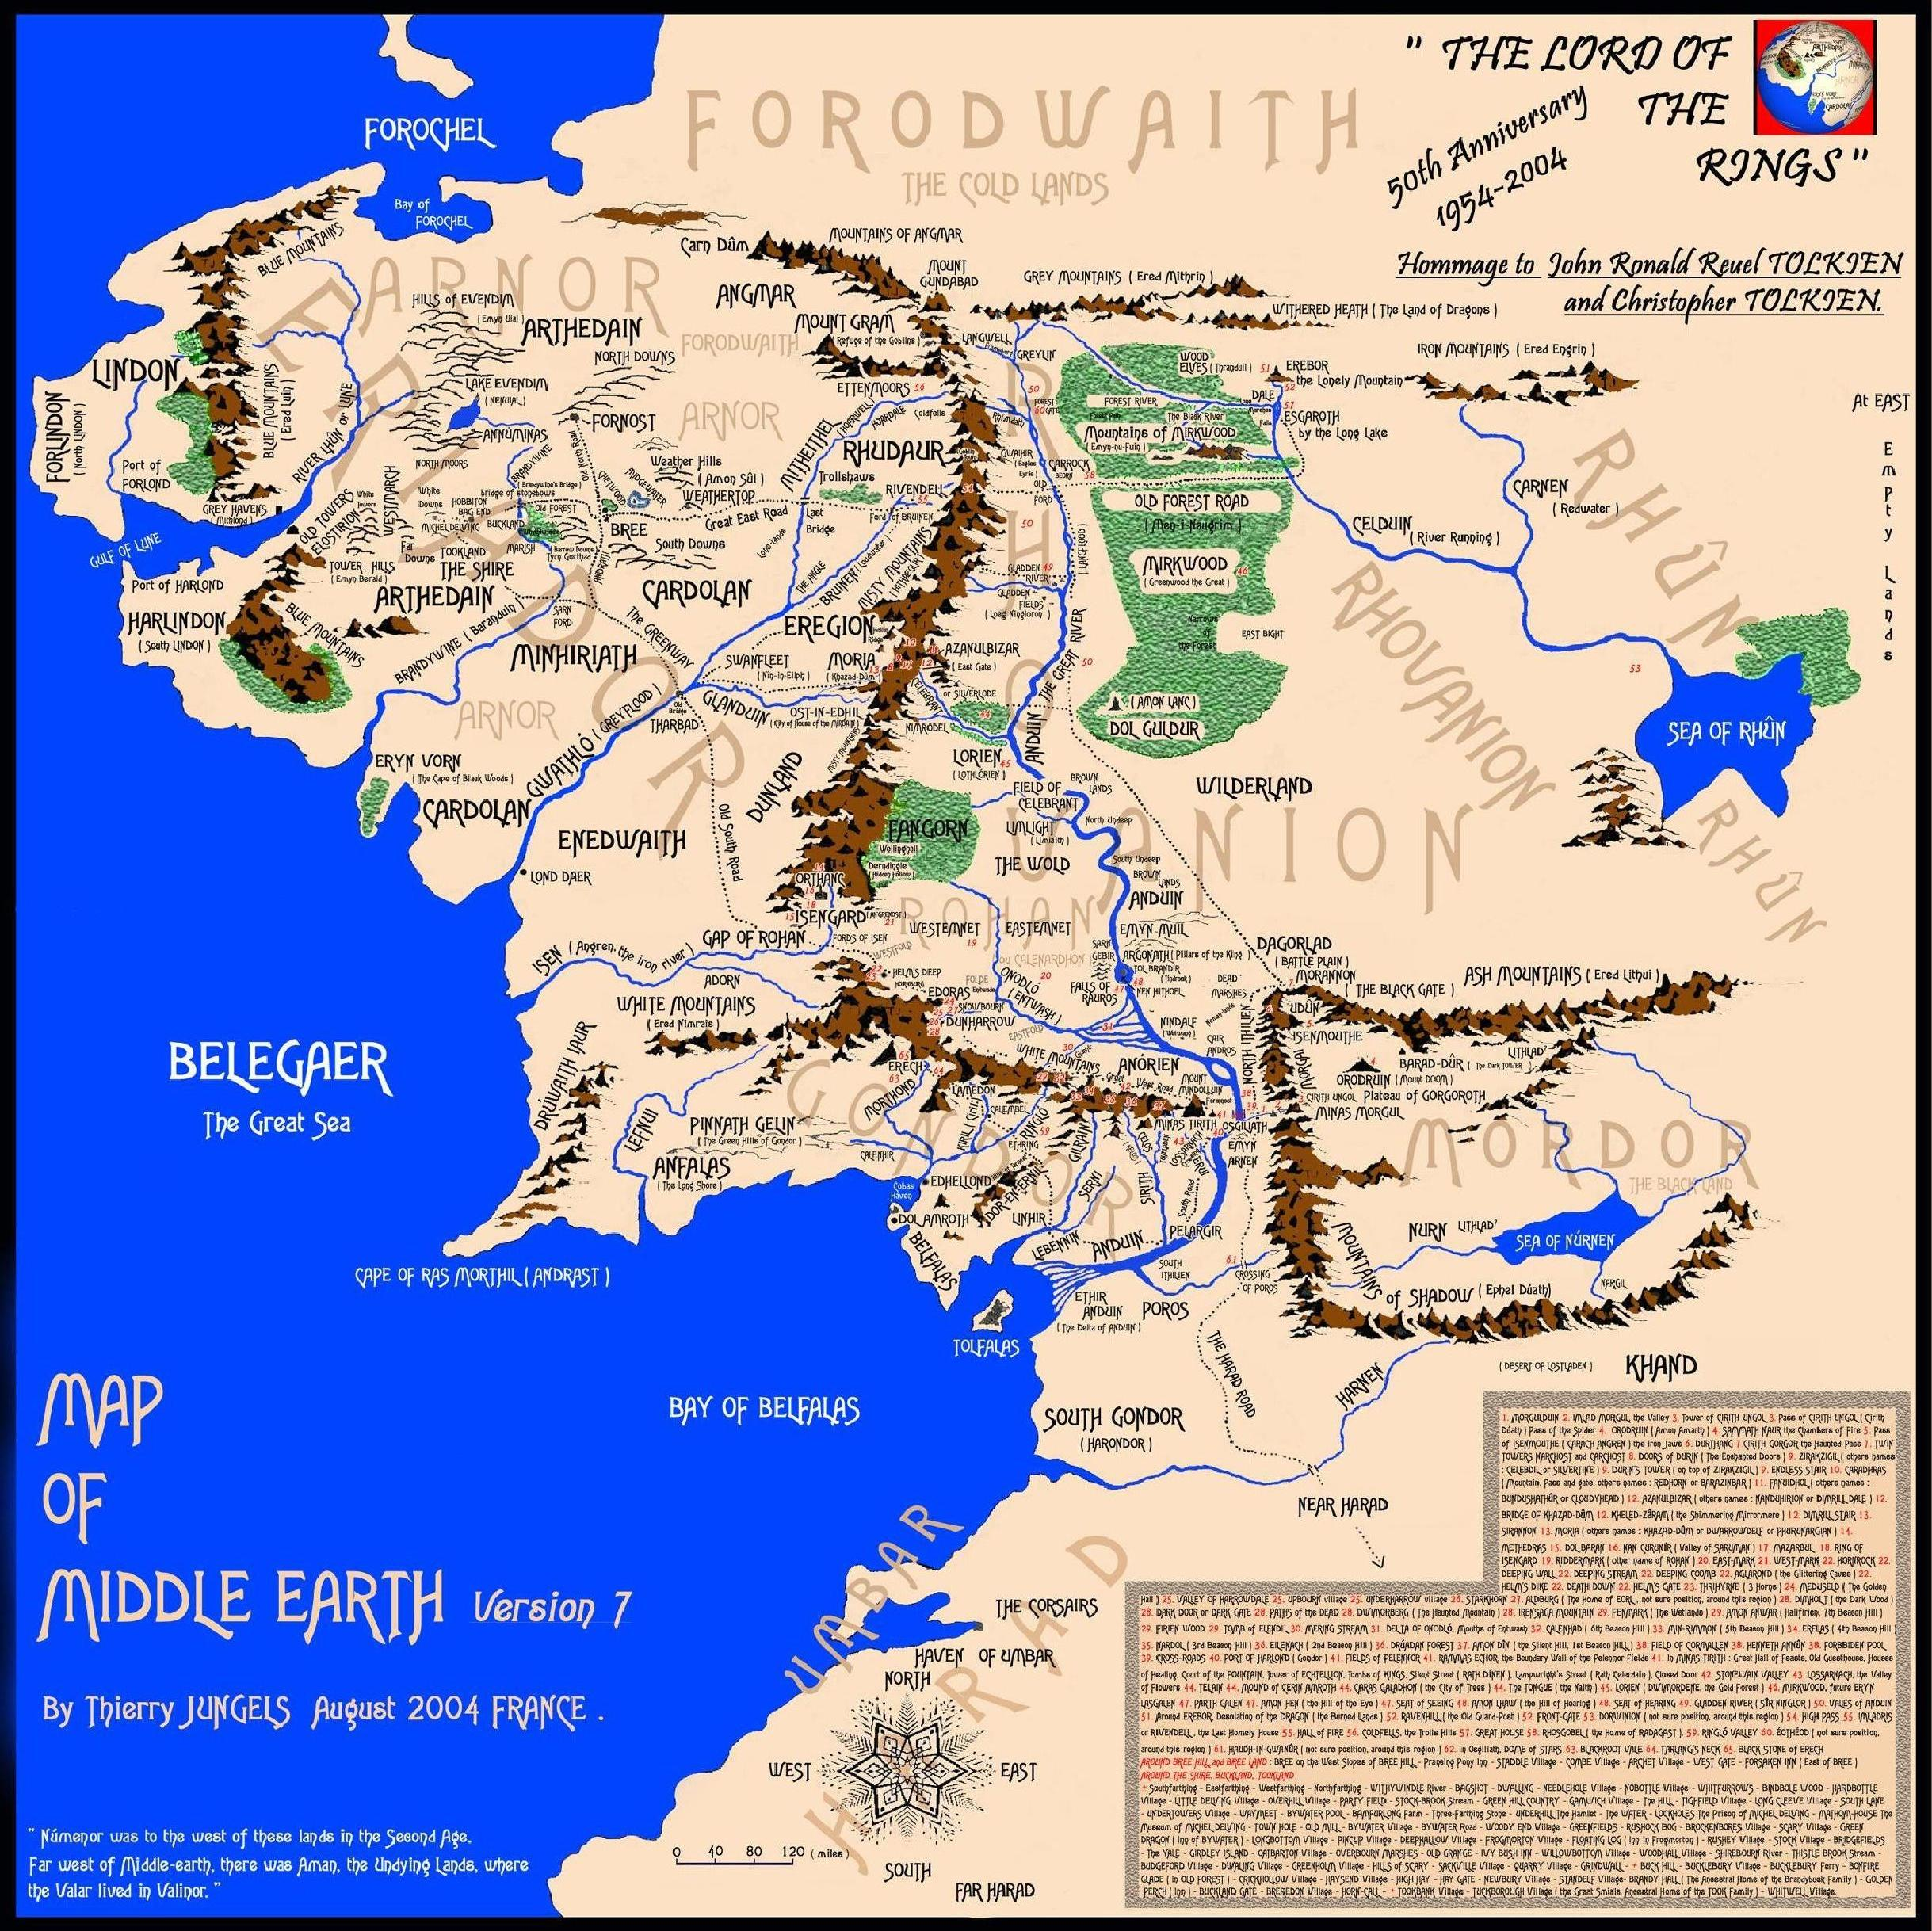 map of middle earth version 7